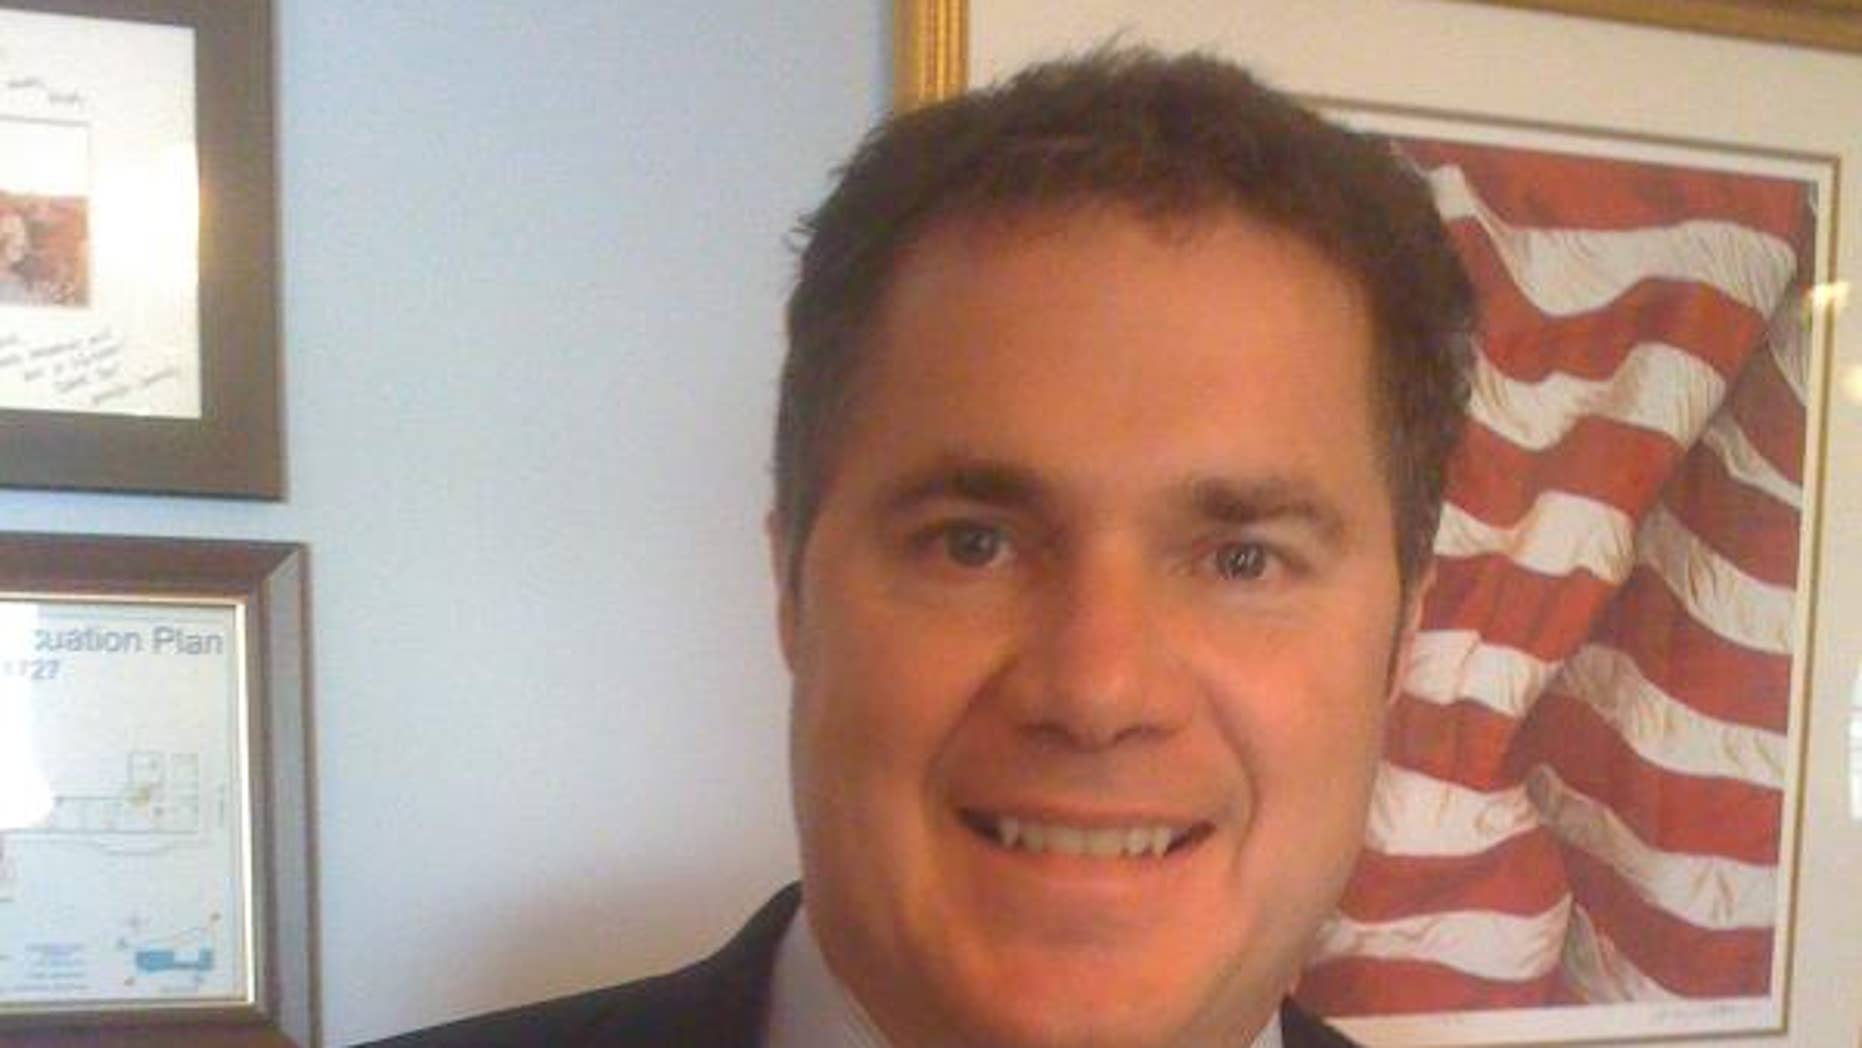 Rep. Bruce Braley, D-Iowa, wears one a button supporting Rep. Debbie Wasserman Schultz in this photo posted to his Twitter account.  (Rep. Burce Braley Photo)